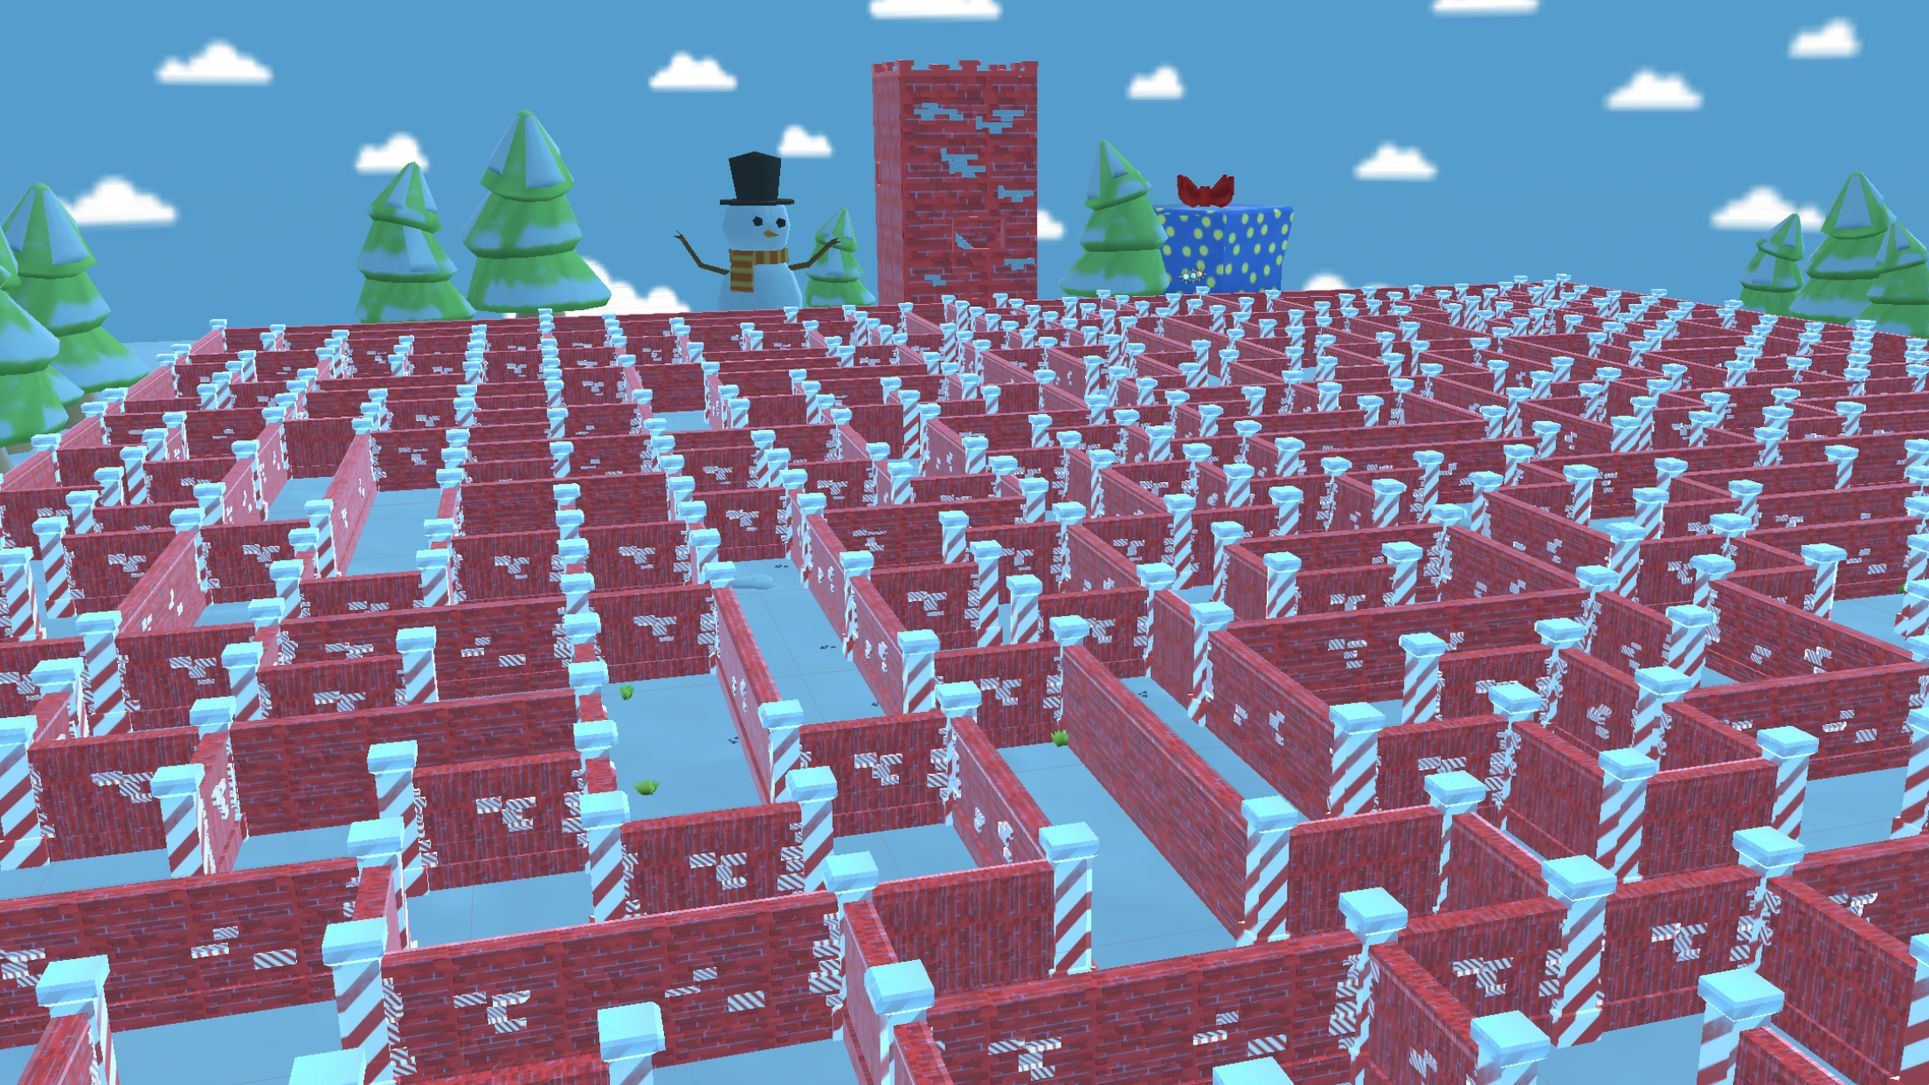 Maze Walk VR Virtual Reality Game Puzzle Apps Apps